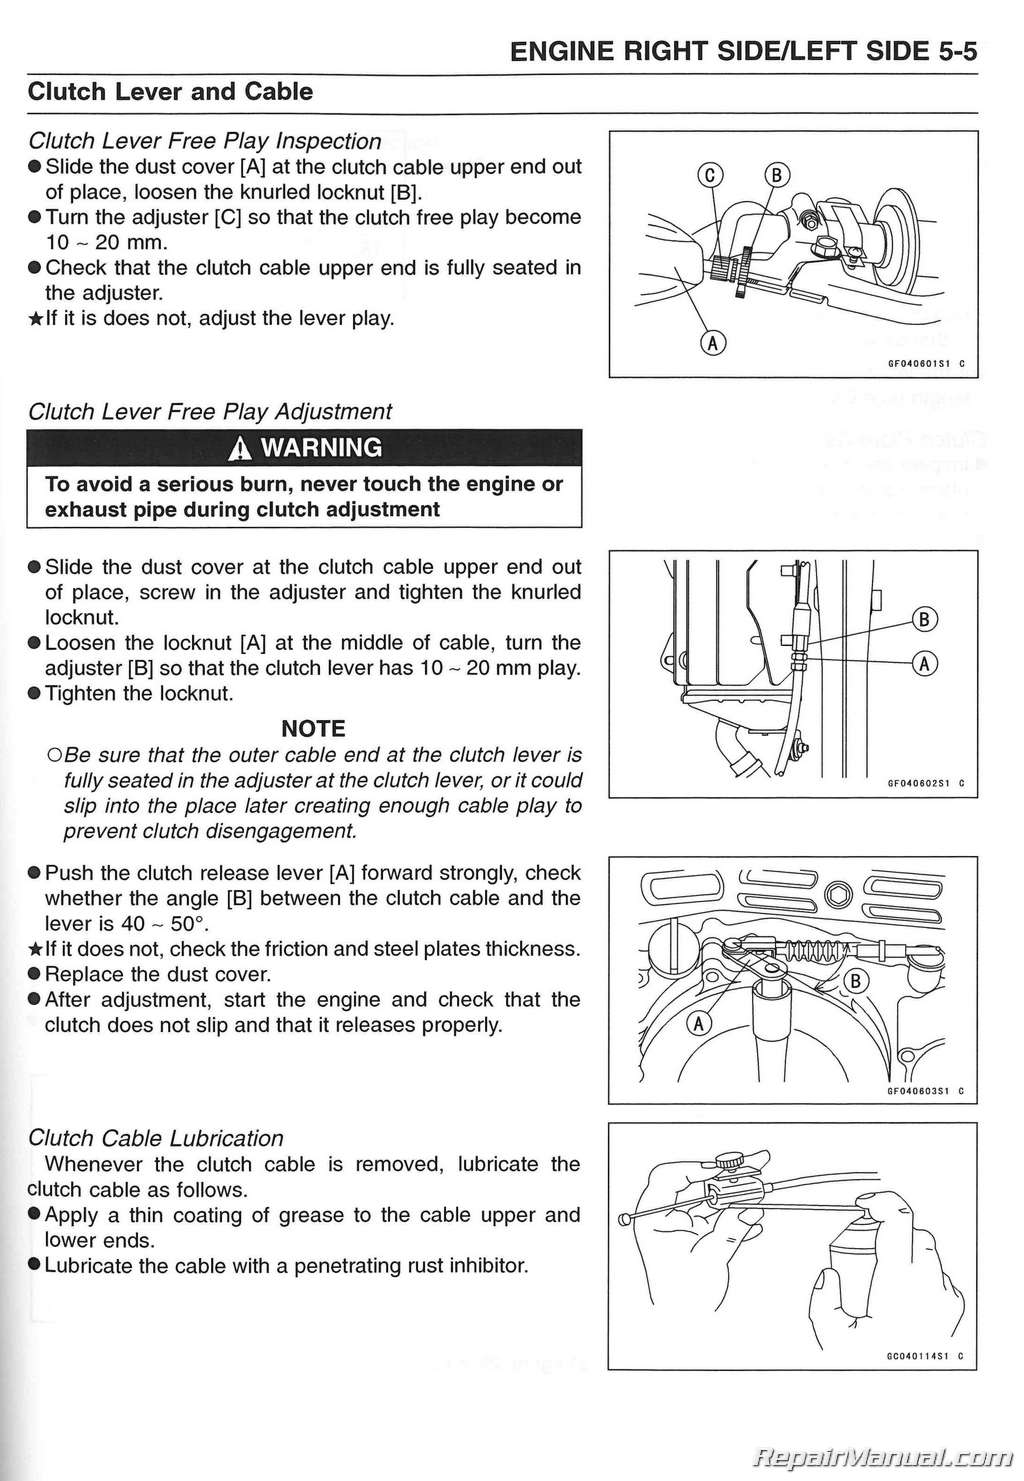 1999 2006 Kawasaki Klx250 Service Manual Supplement 125cc Engine Diagram